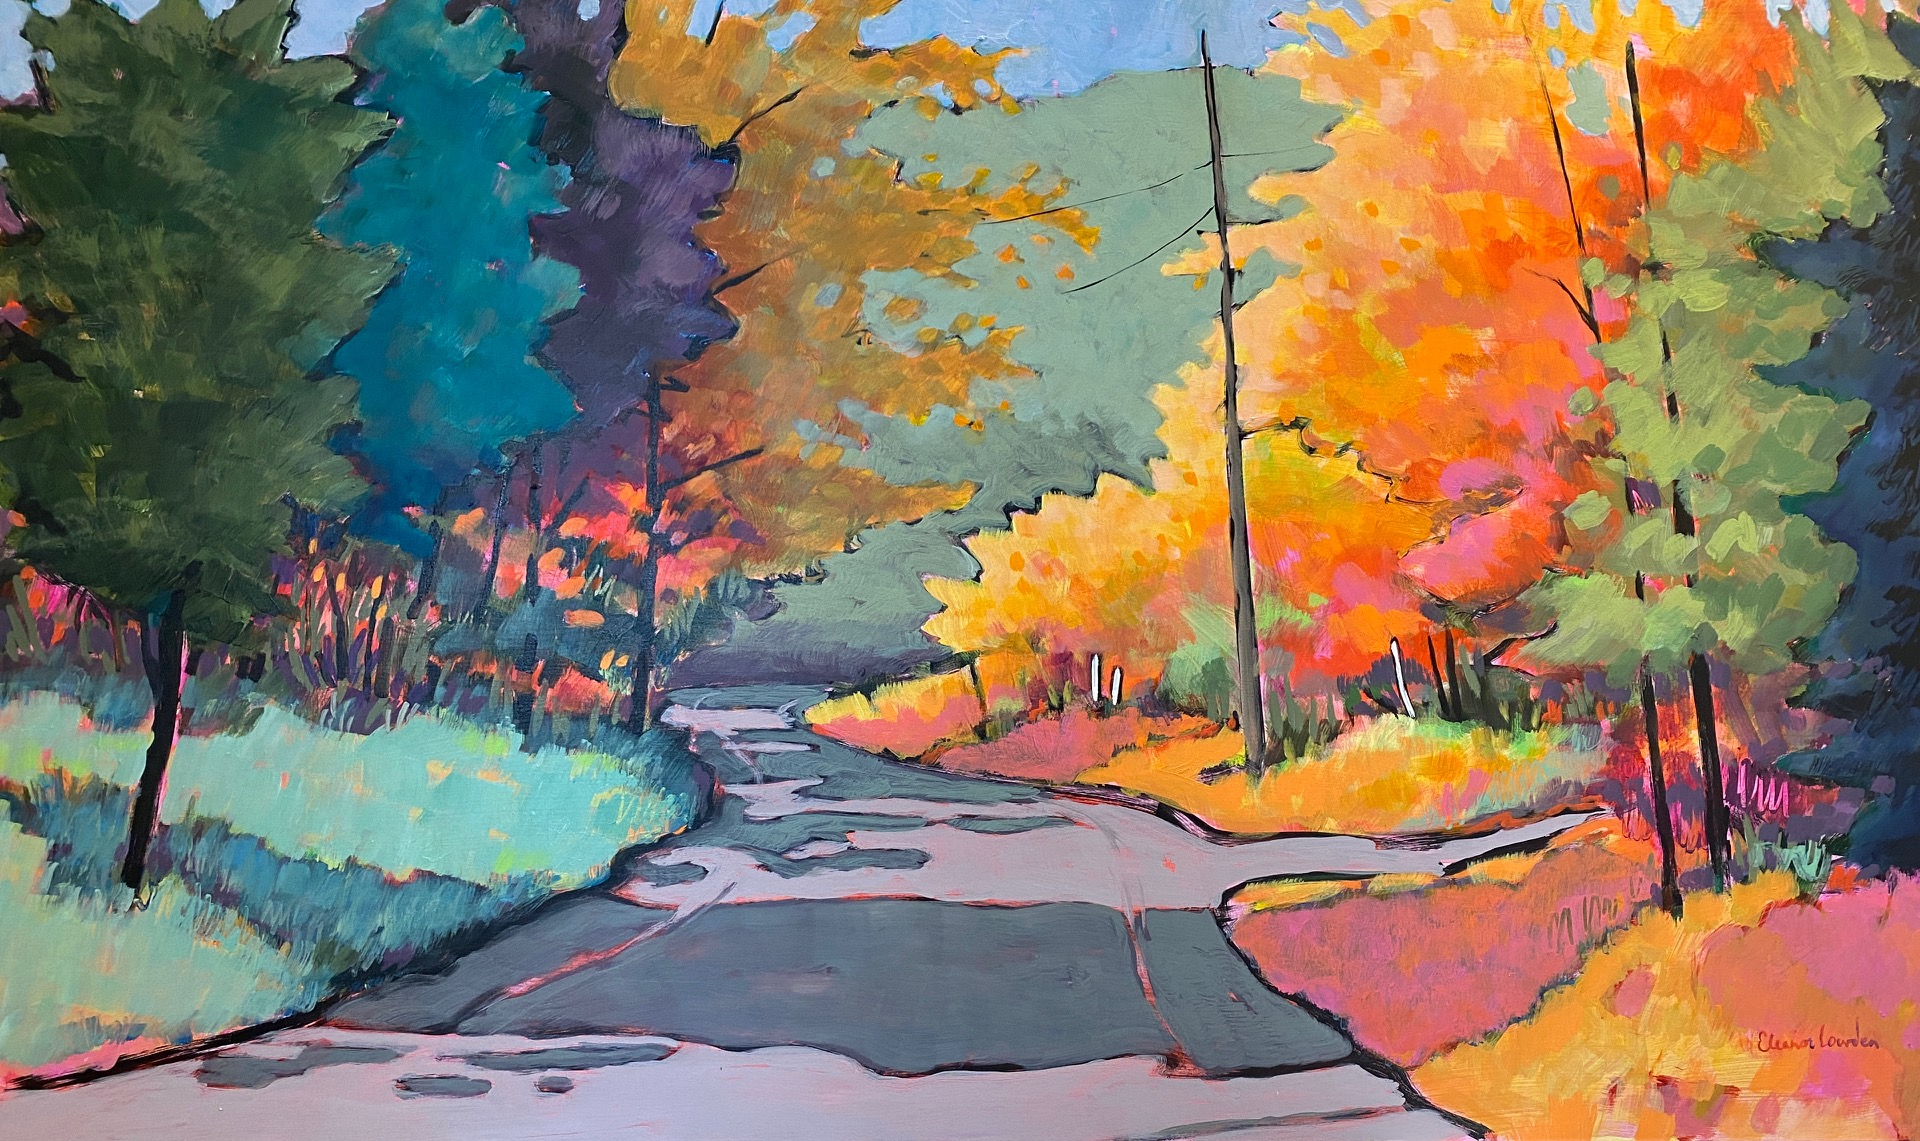 I Created a World for You, acrylic landscape painting by Eleanor Lowden | Effusion Art Gallery + Cast Glass Studio, Invermere BC